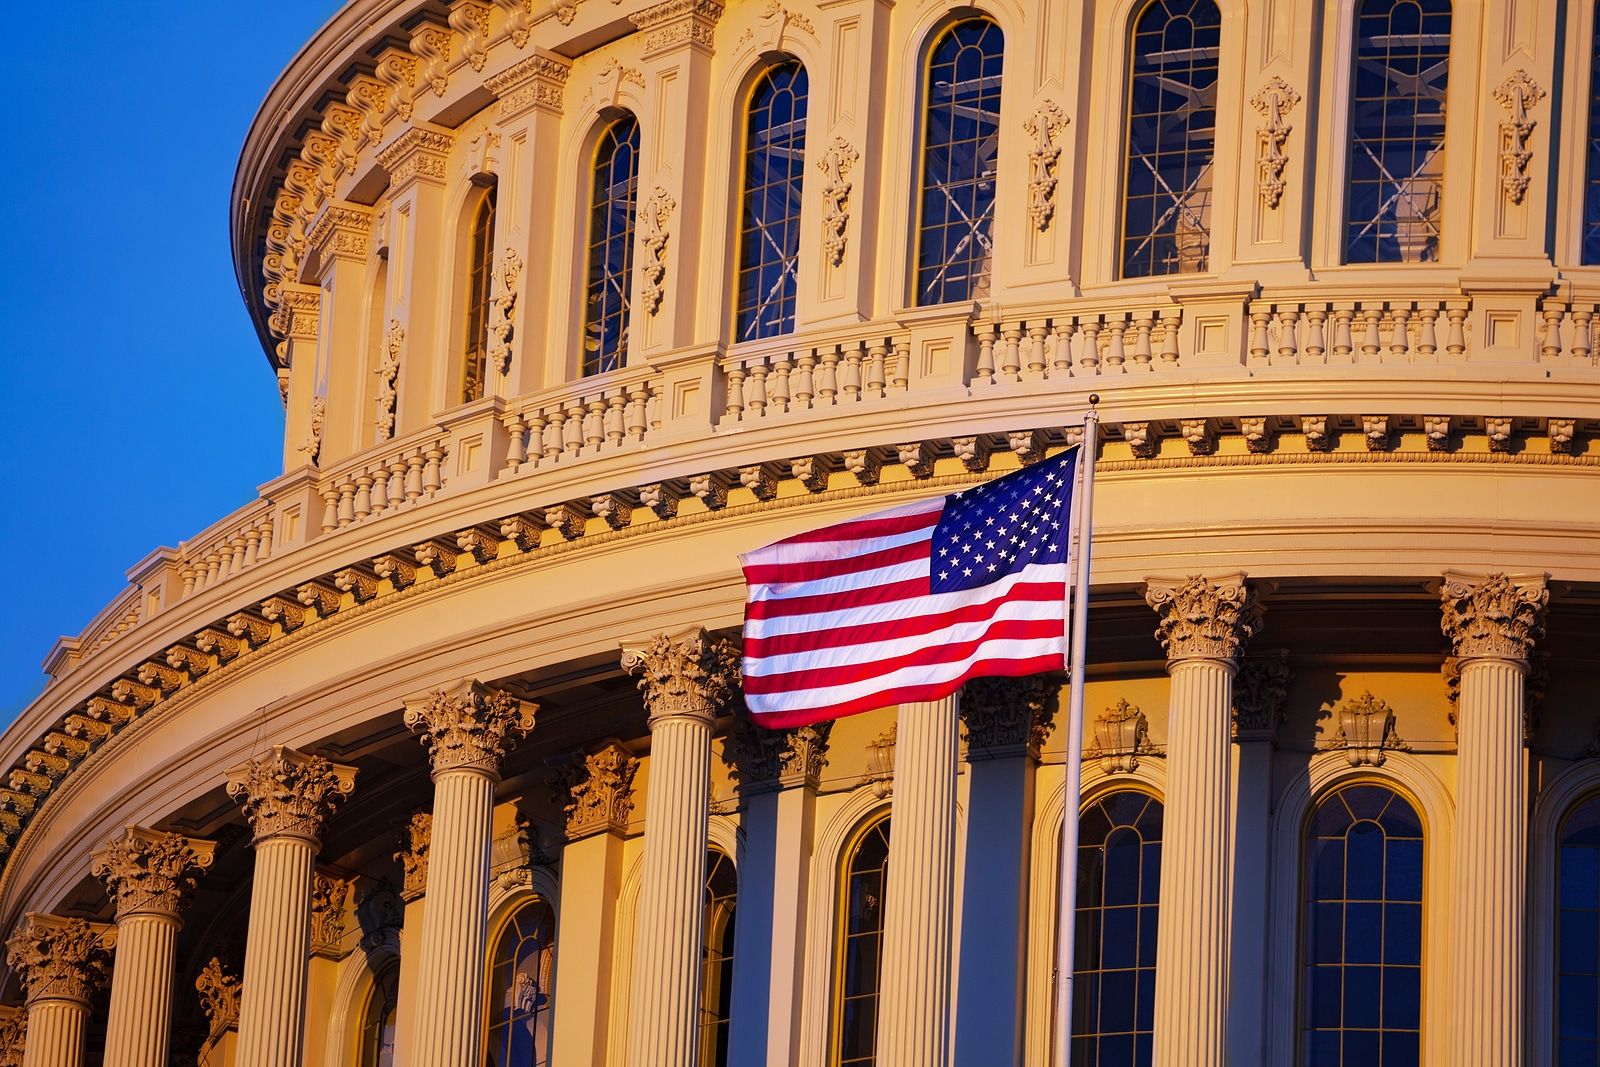 Image of the US Capital Building, where laws come from on the federal level